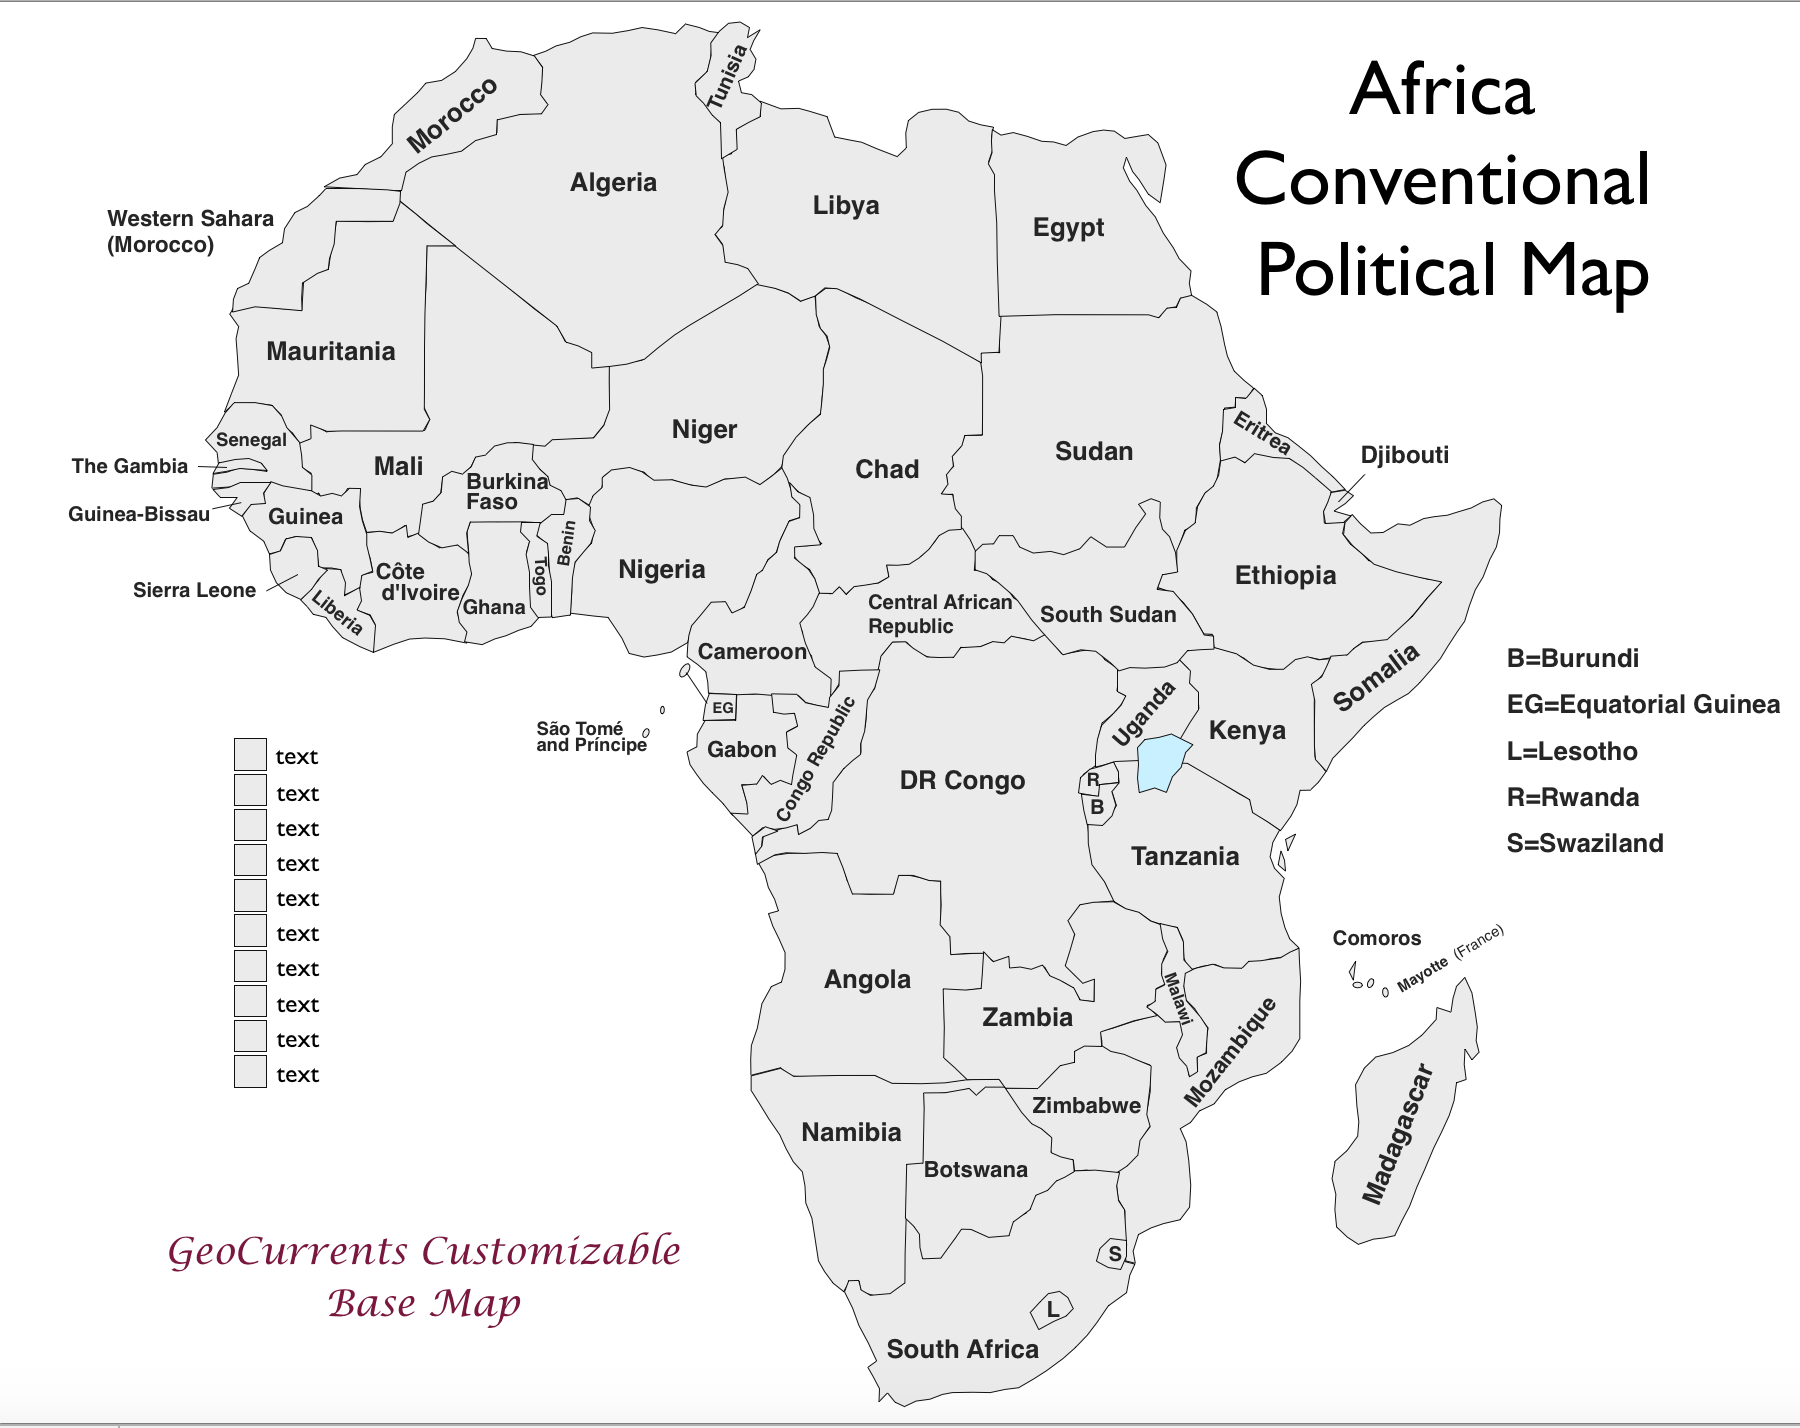 Free Customizable Maps Of Africa For Download